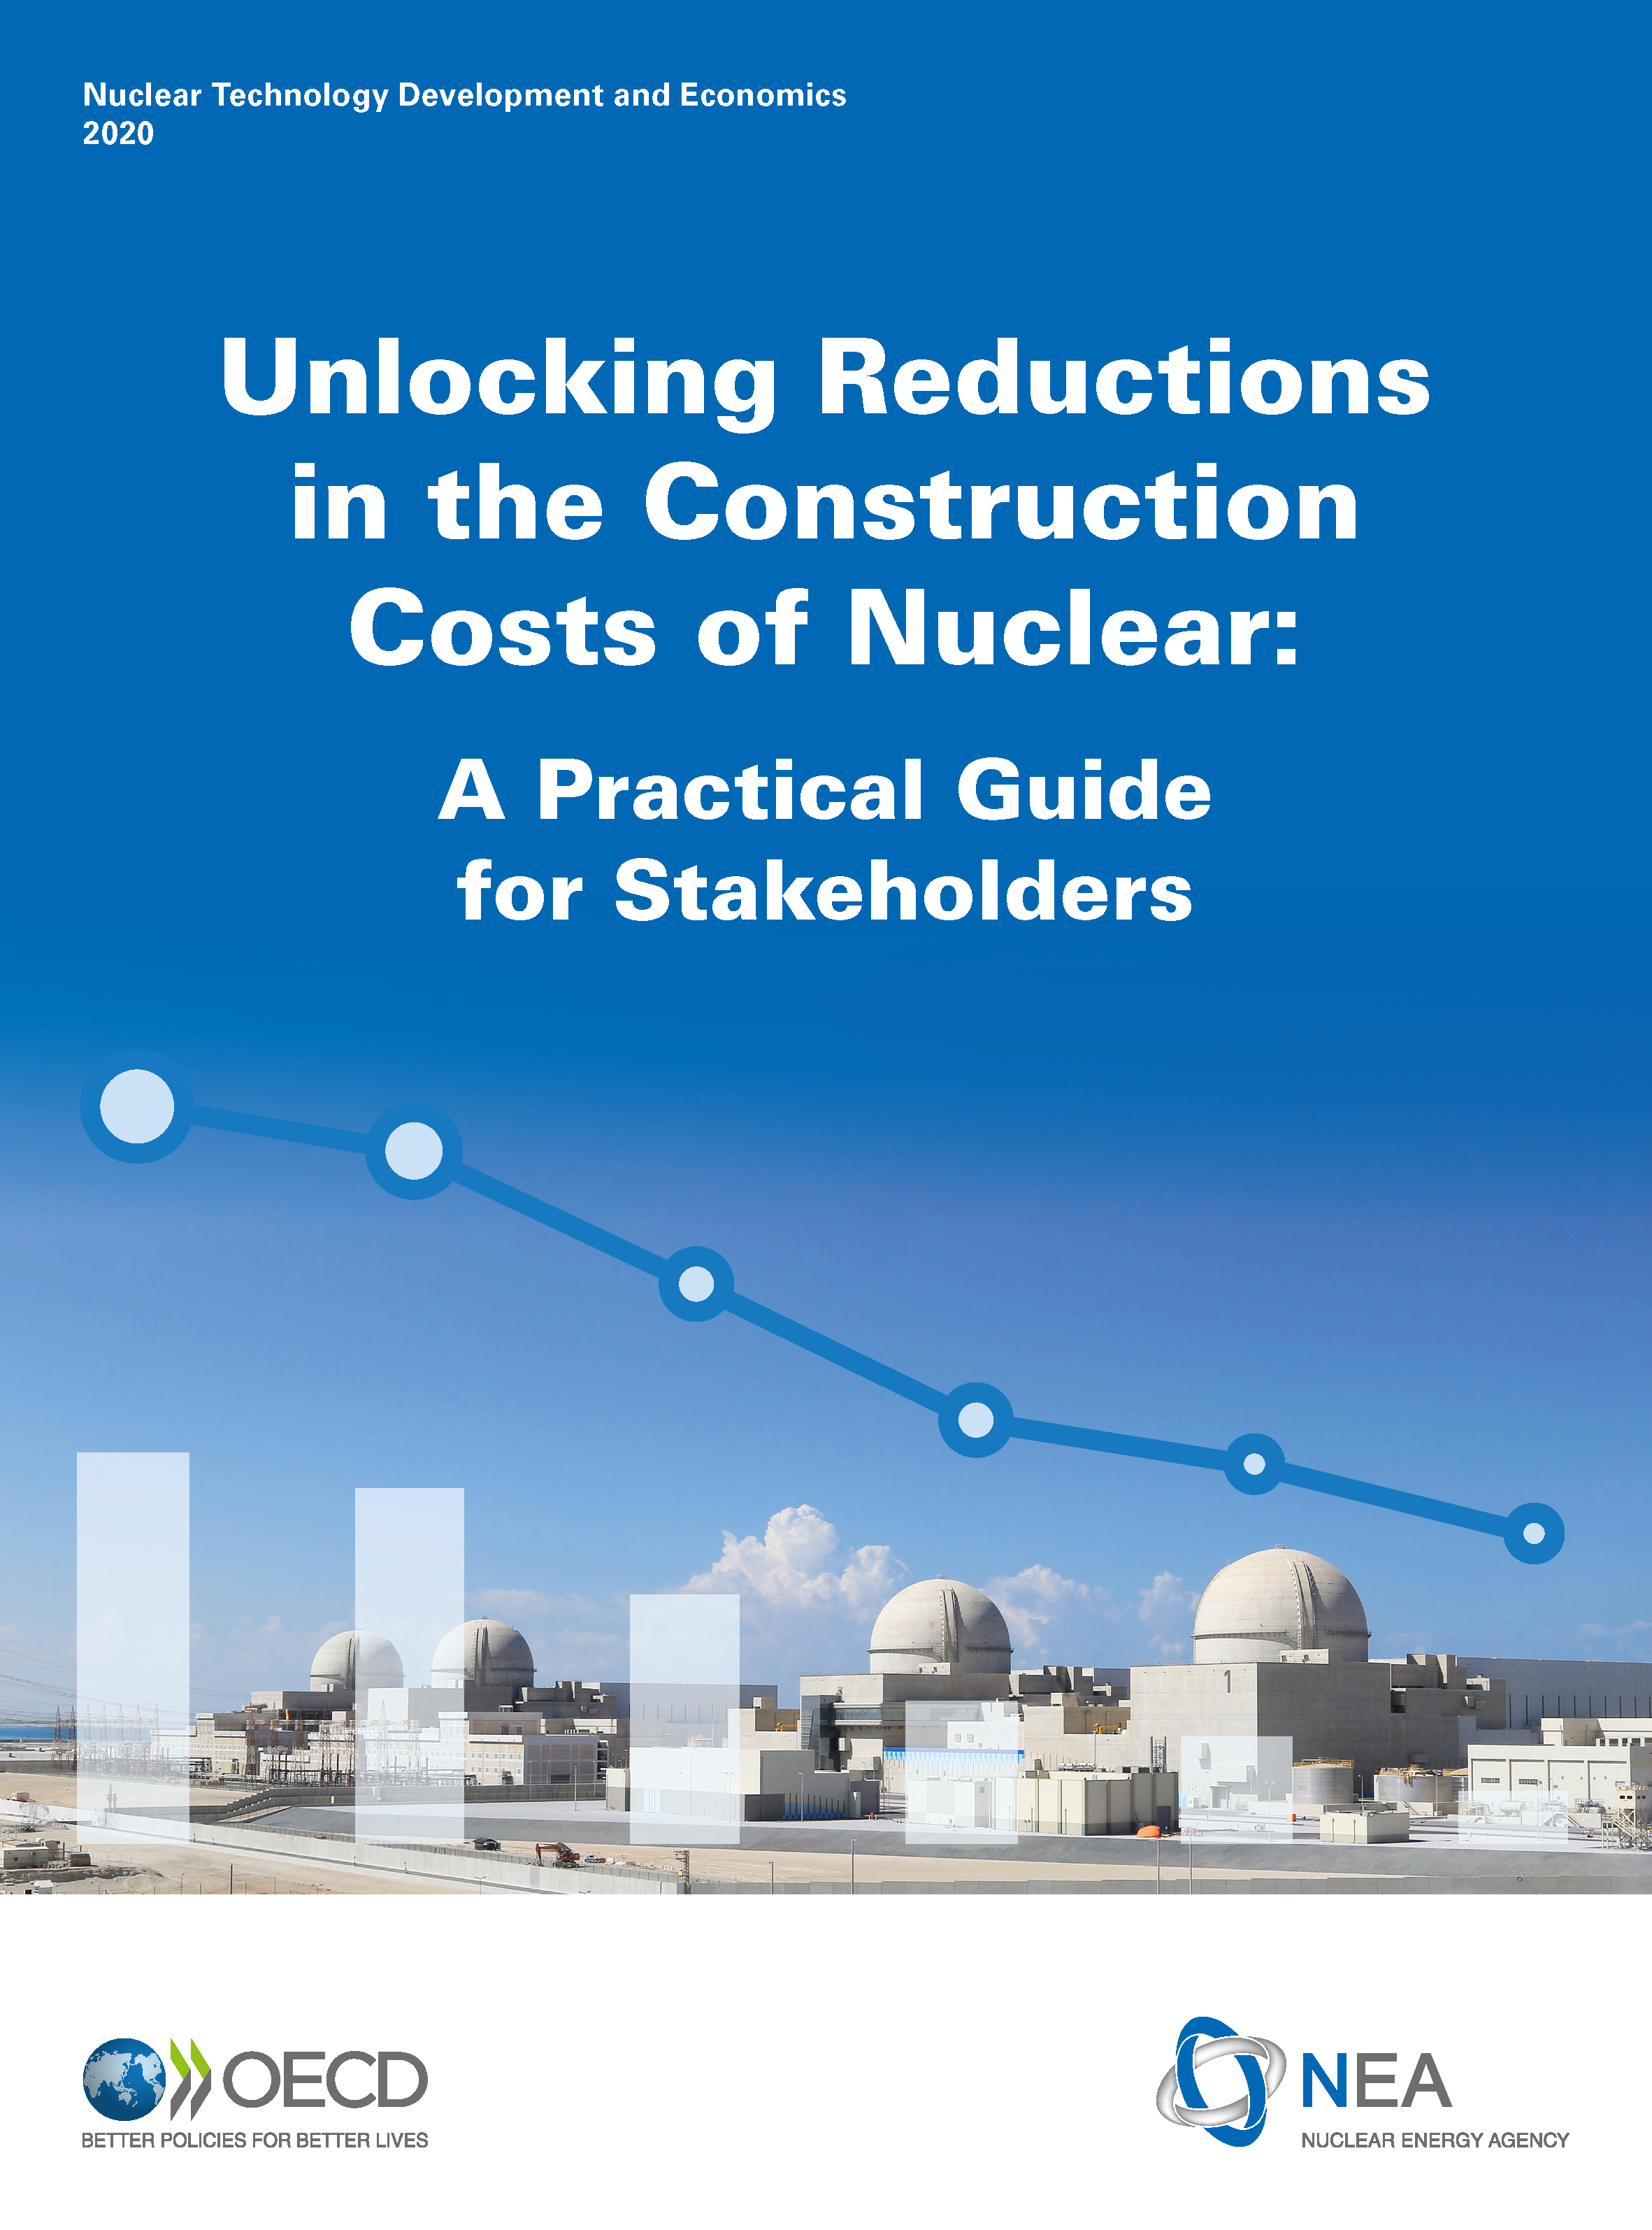 Unlocking reductions in the construction cost of nuclear: A practical guide for stakeholders